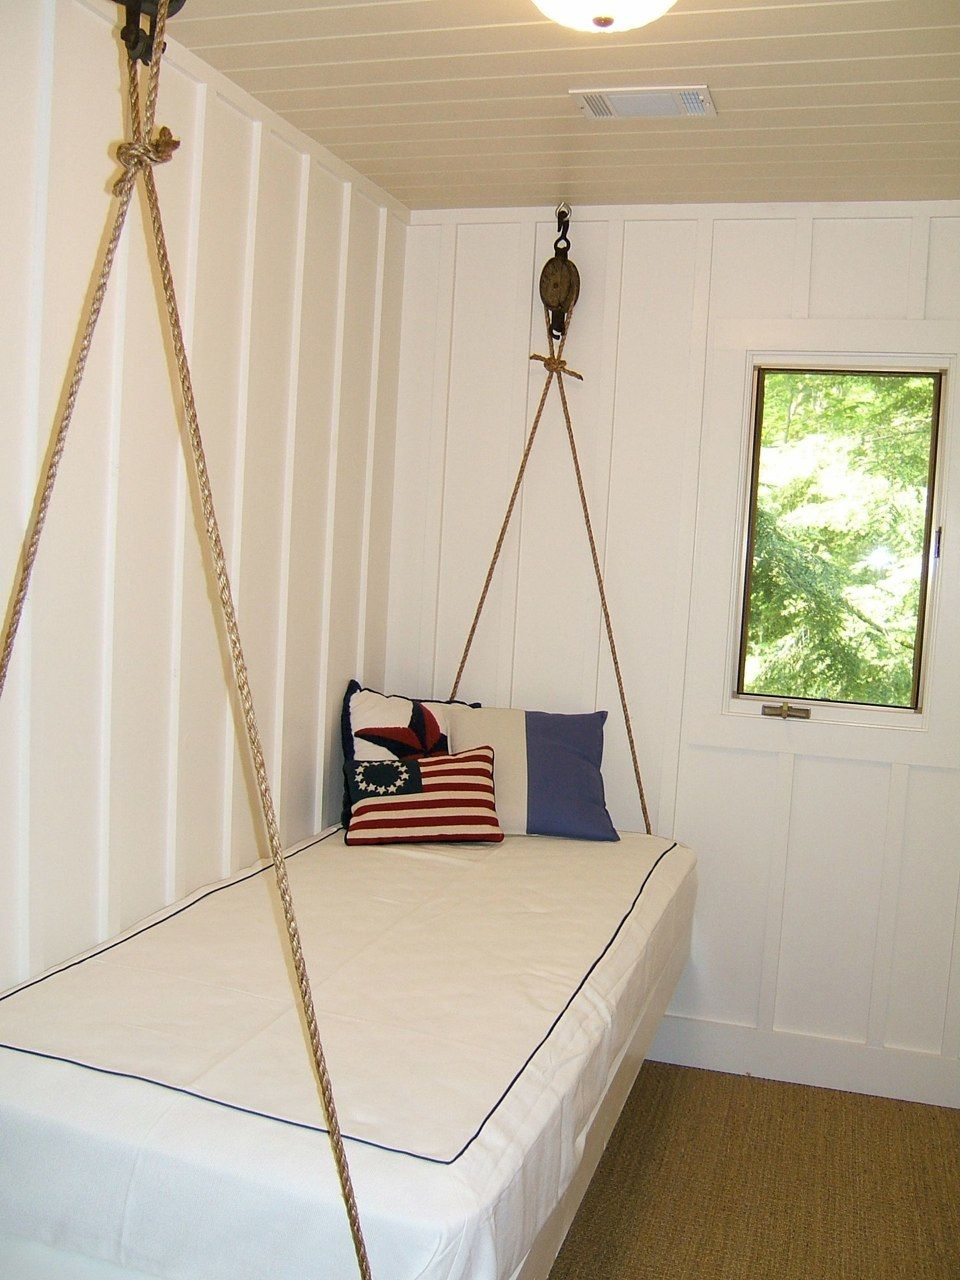 Lake Cabin Decorating Lake Cabin Decorgreat Idea For A Lakehouse Bed Would Look So